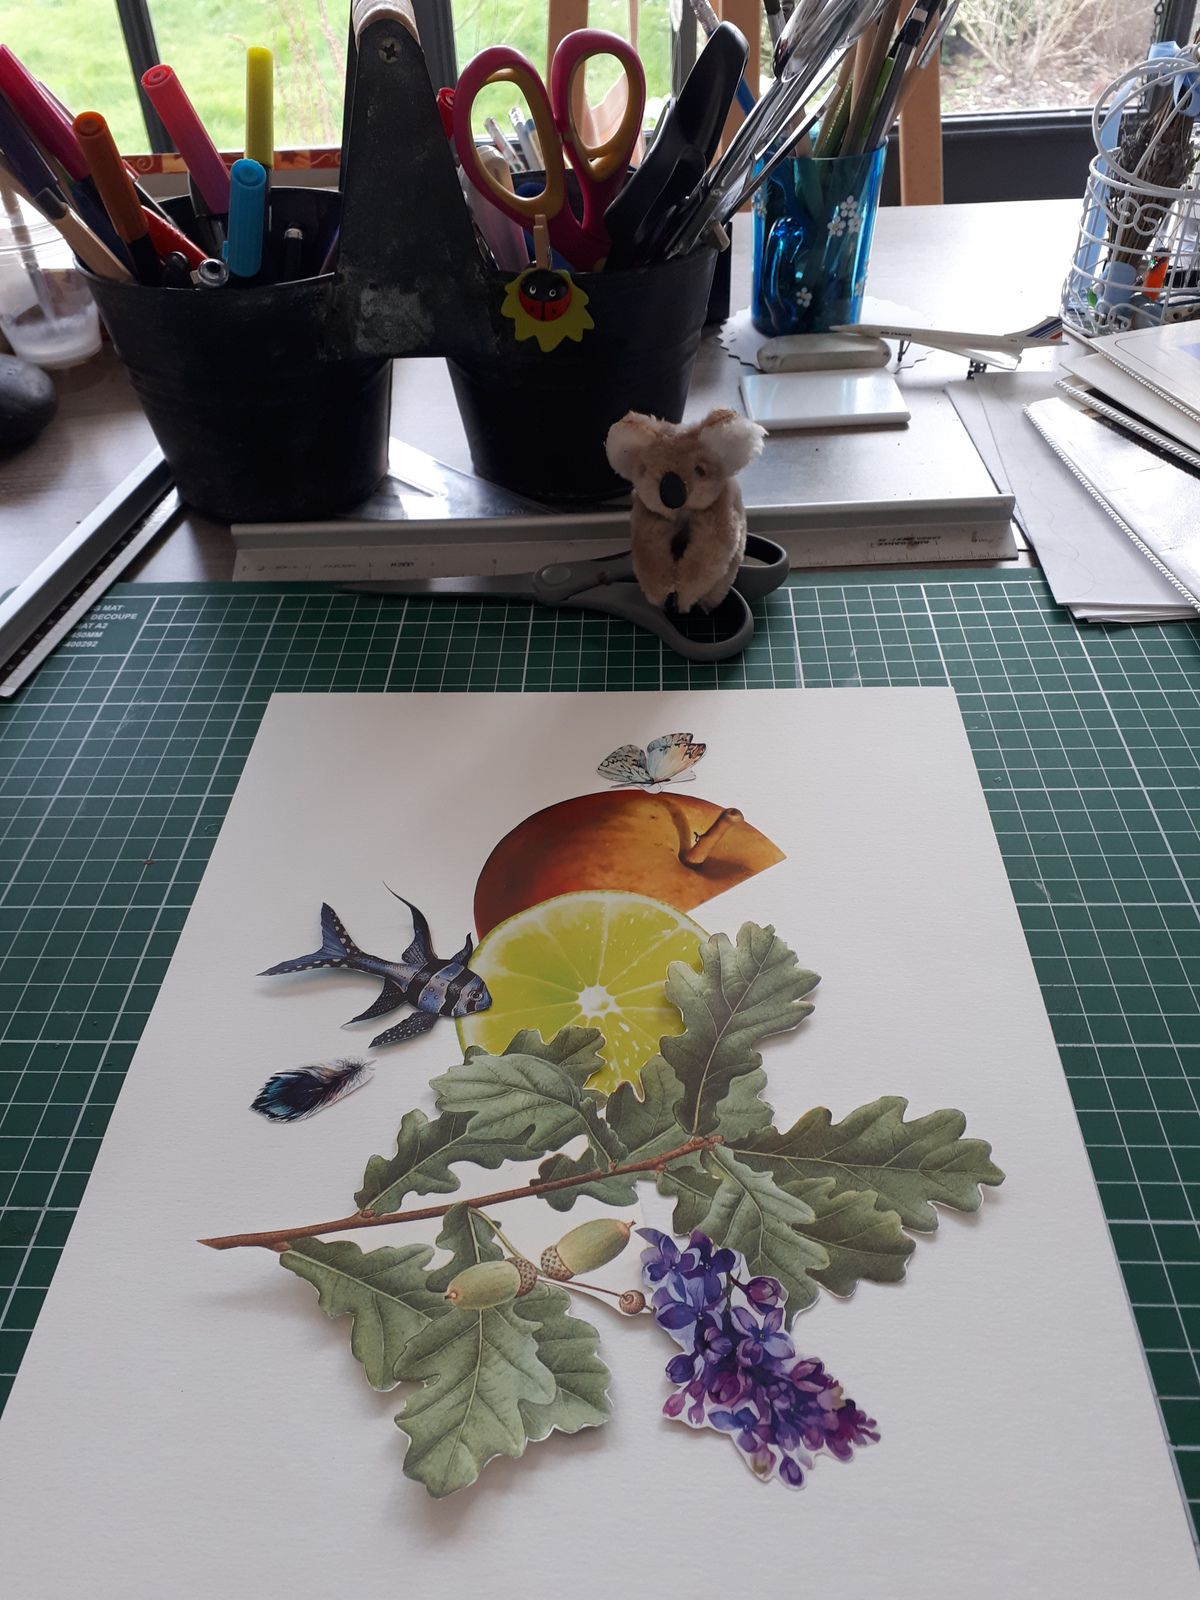 "Les Collages d'eMmA MessanA, dans l'atelier collage N°451 ""Bouquet 9"" en cours de composition © eMmA MessanA"